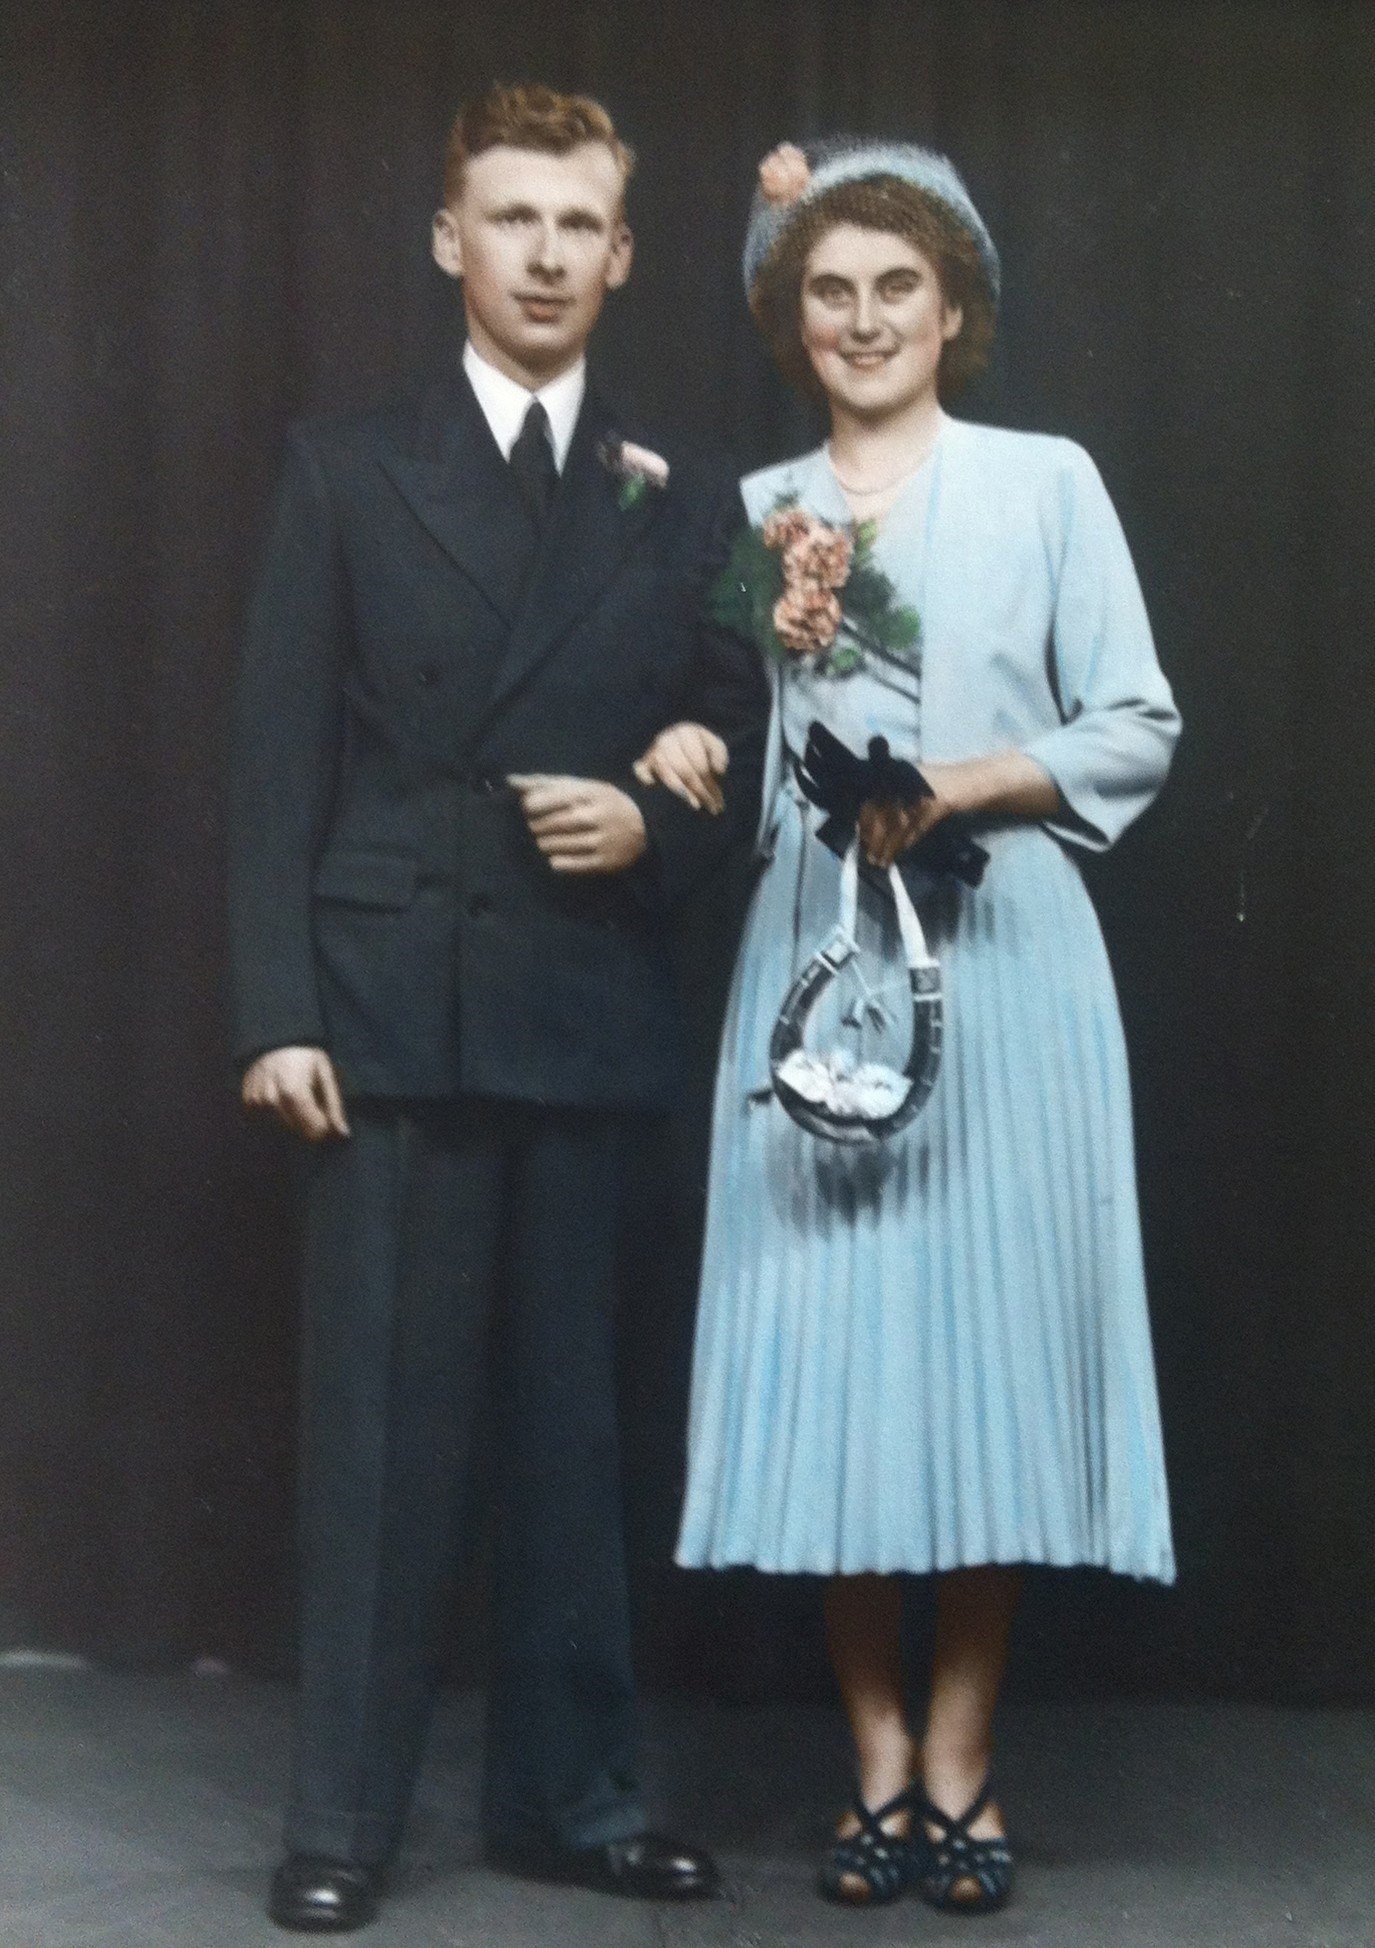 Joan (nee Golightly) and Lawrence Tully's Wedding 12 August 1950